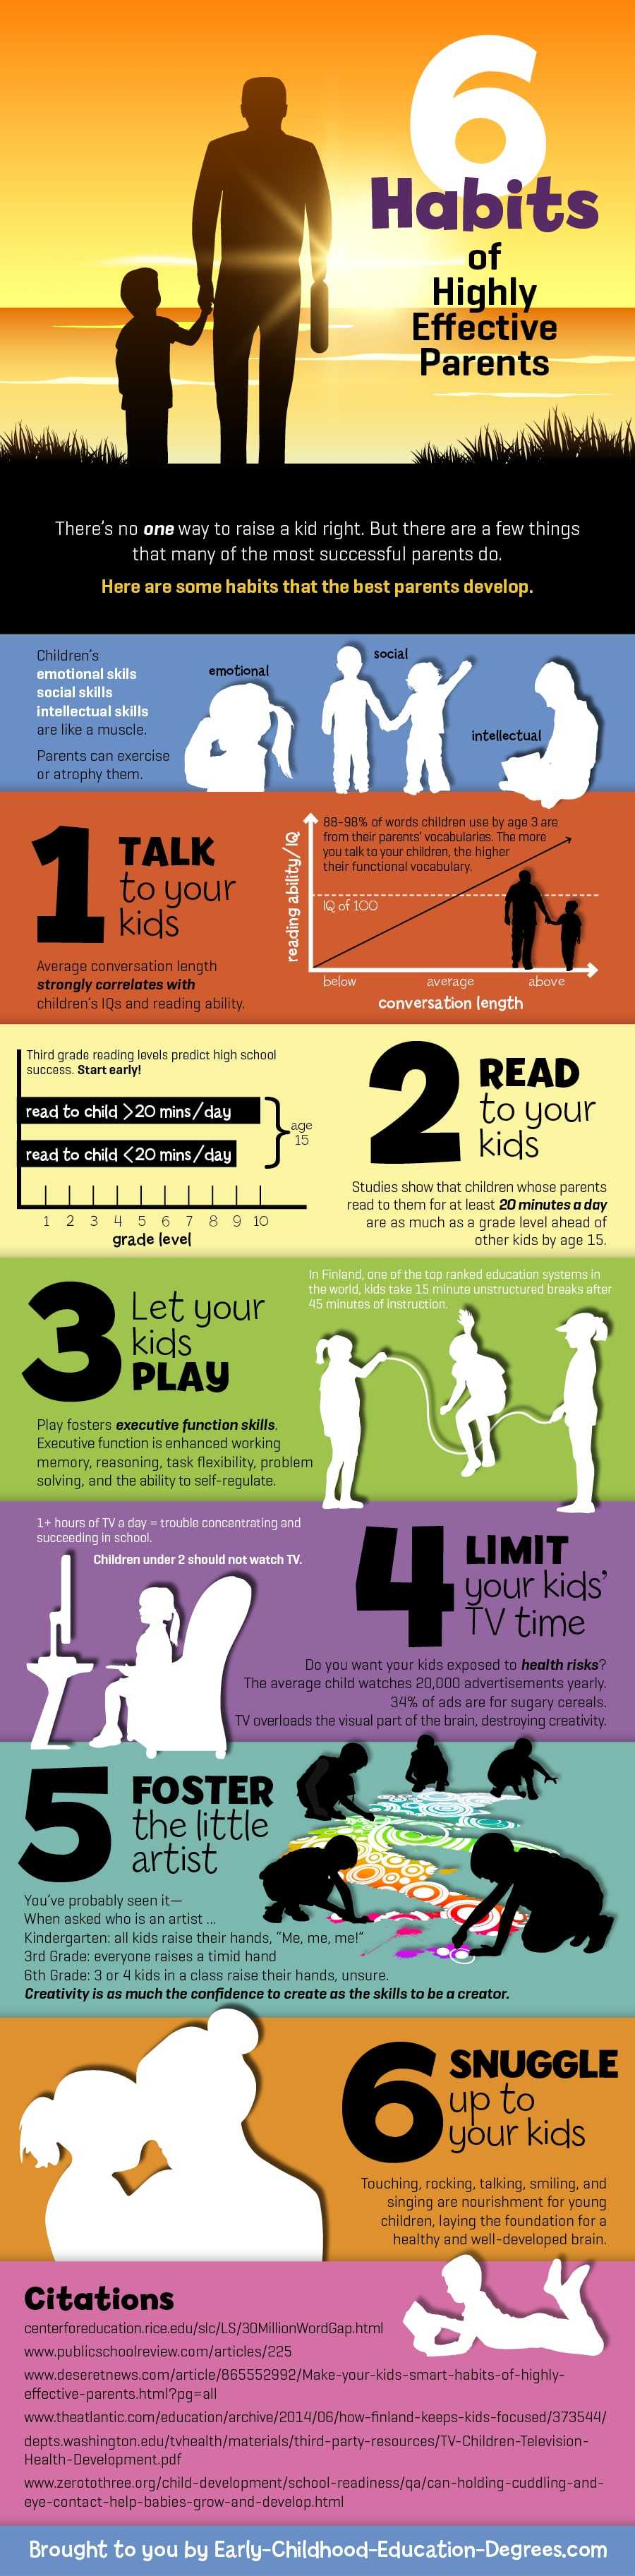 Habits Of Highly Effective Parents